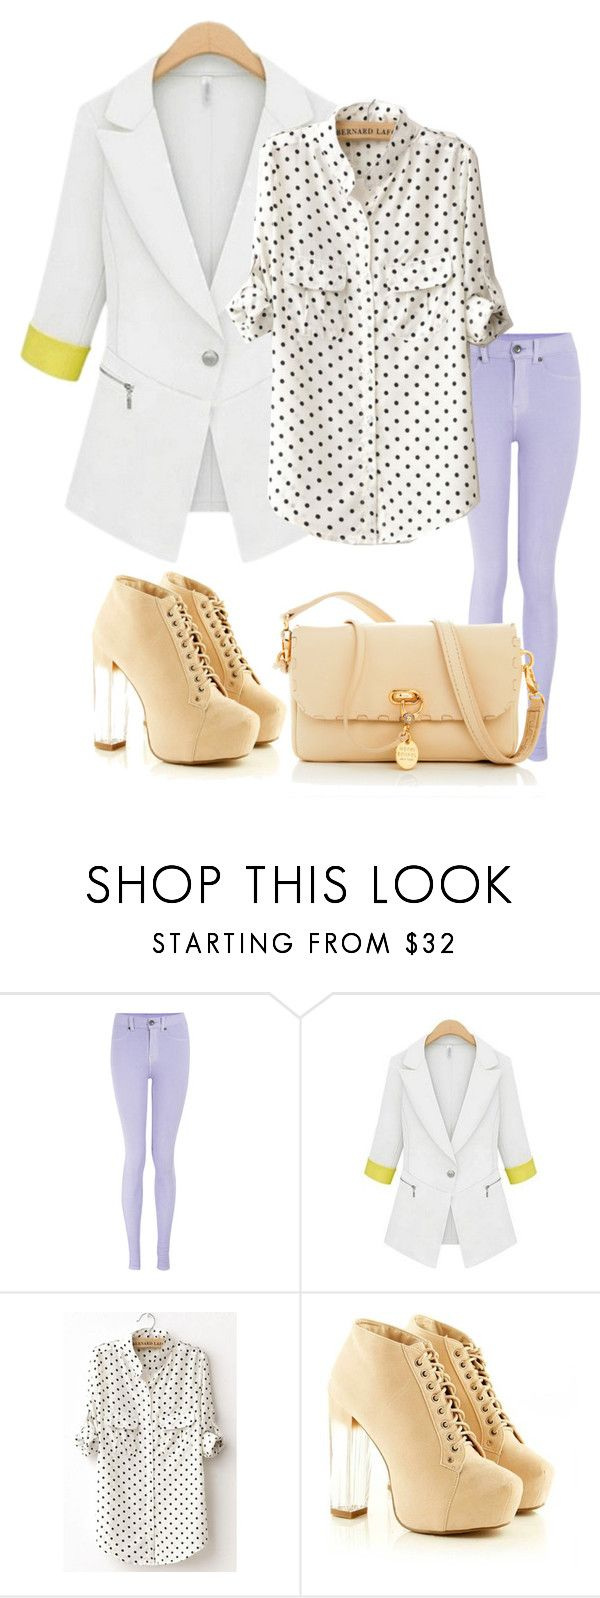 """""""Invite friends to wish"""" by oasap ❤ liked on Polyvore featuring Dr. Denim and Henri Bendel"""